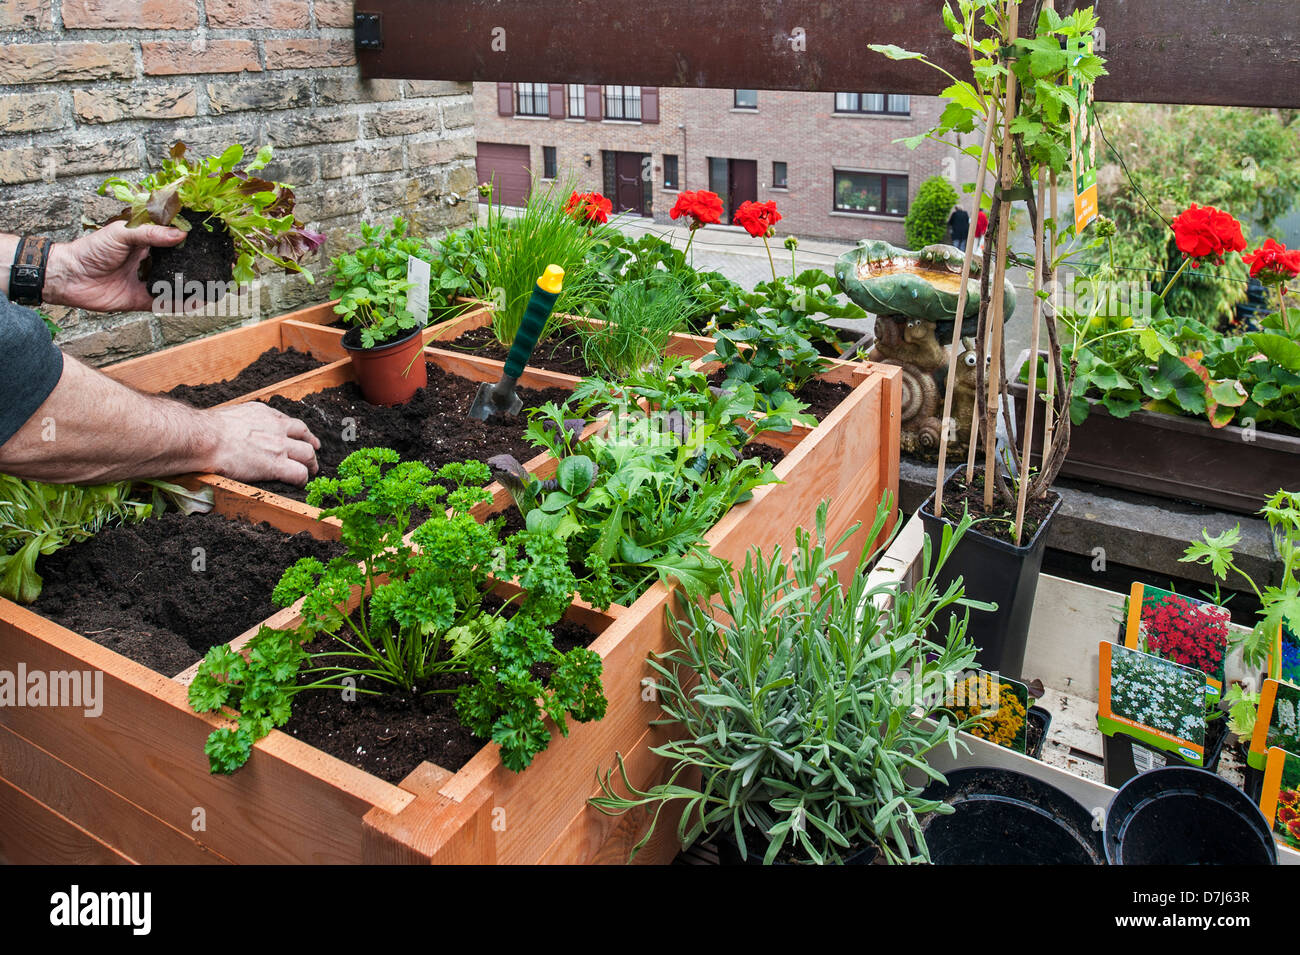 Square foot gardening by planting flowers, herbs and vegetables in wooden box on balcony - Stock Image